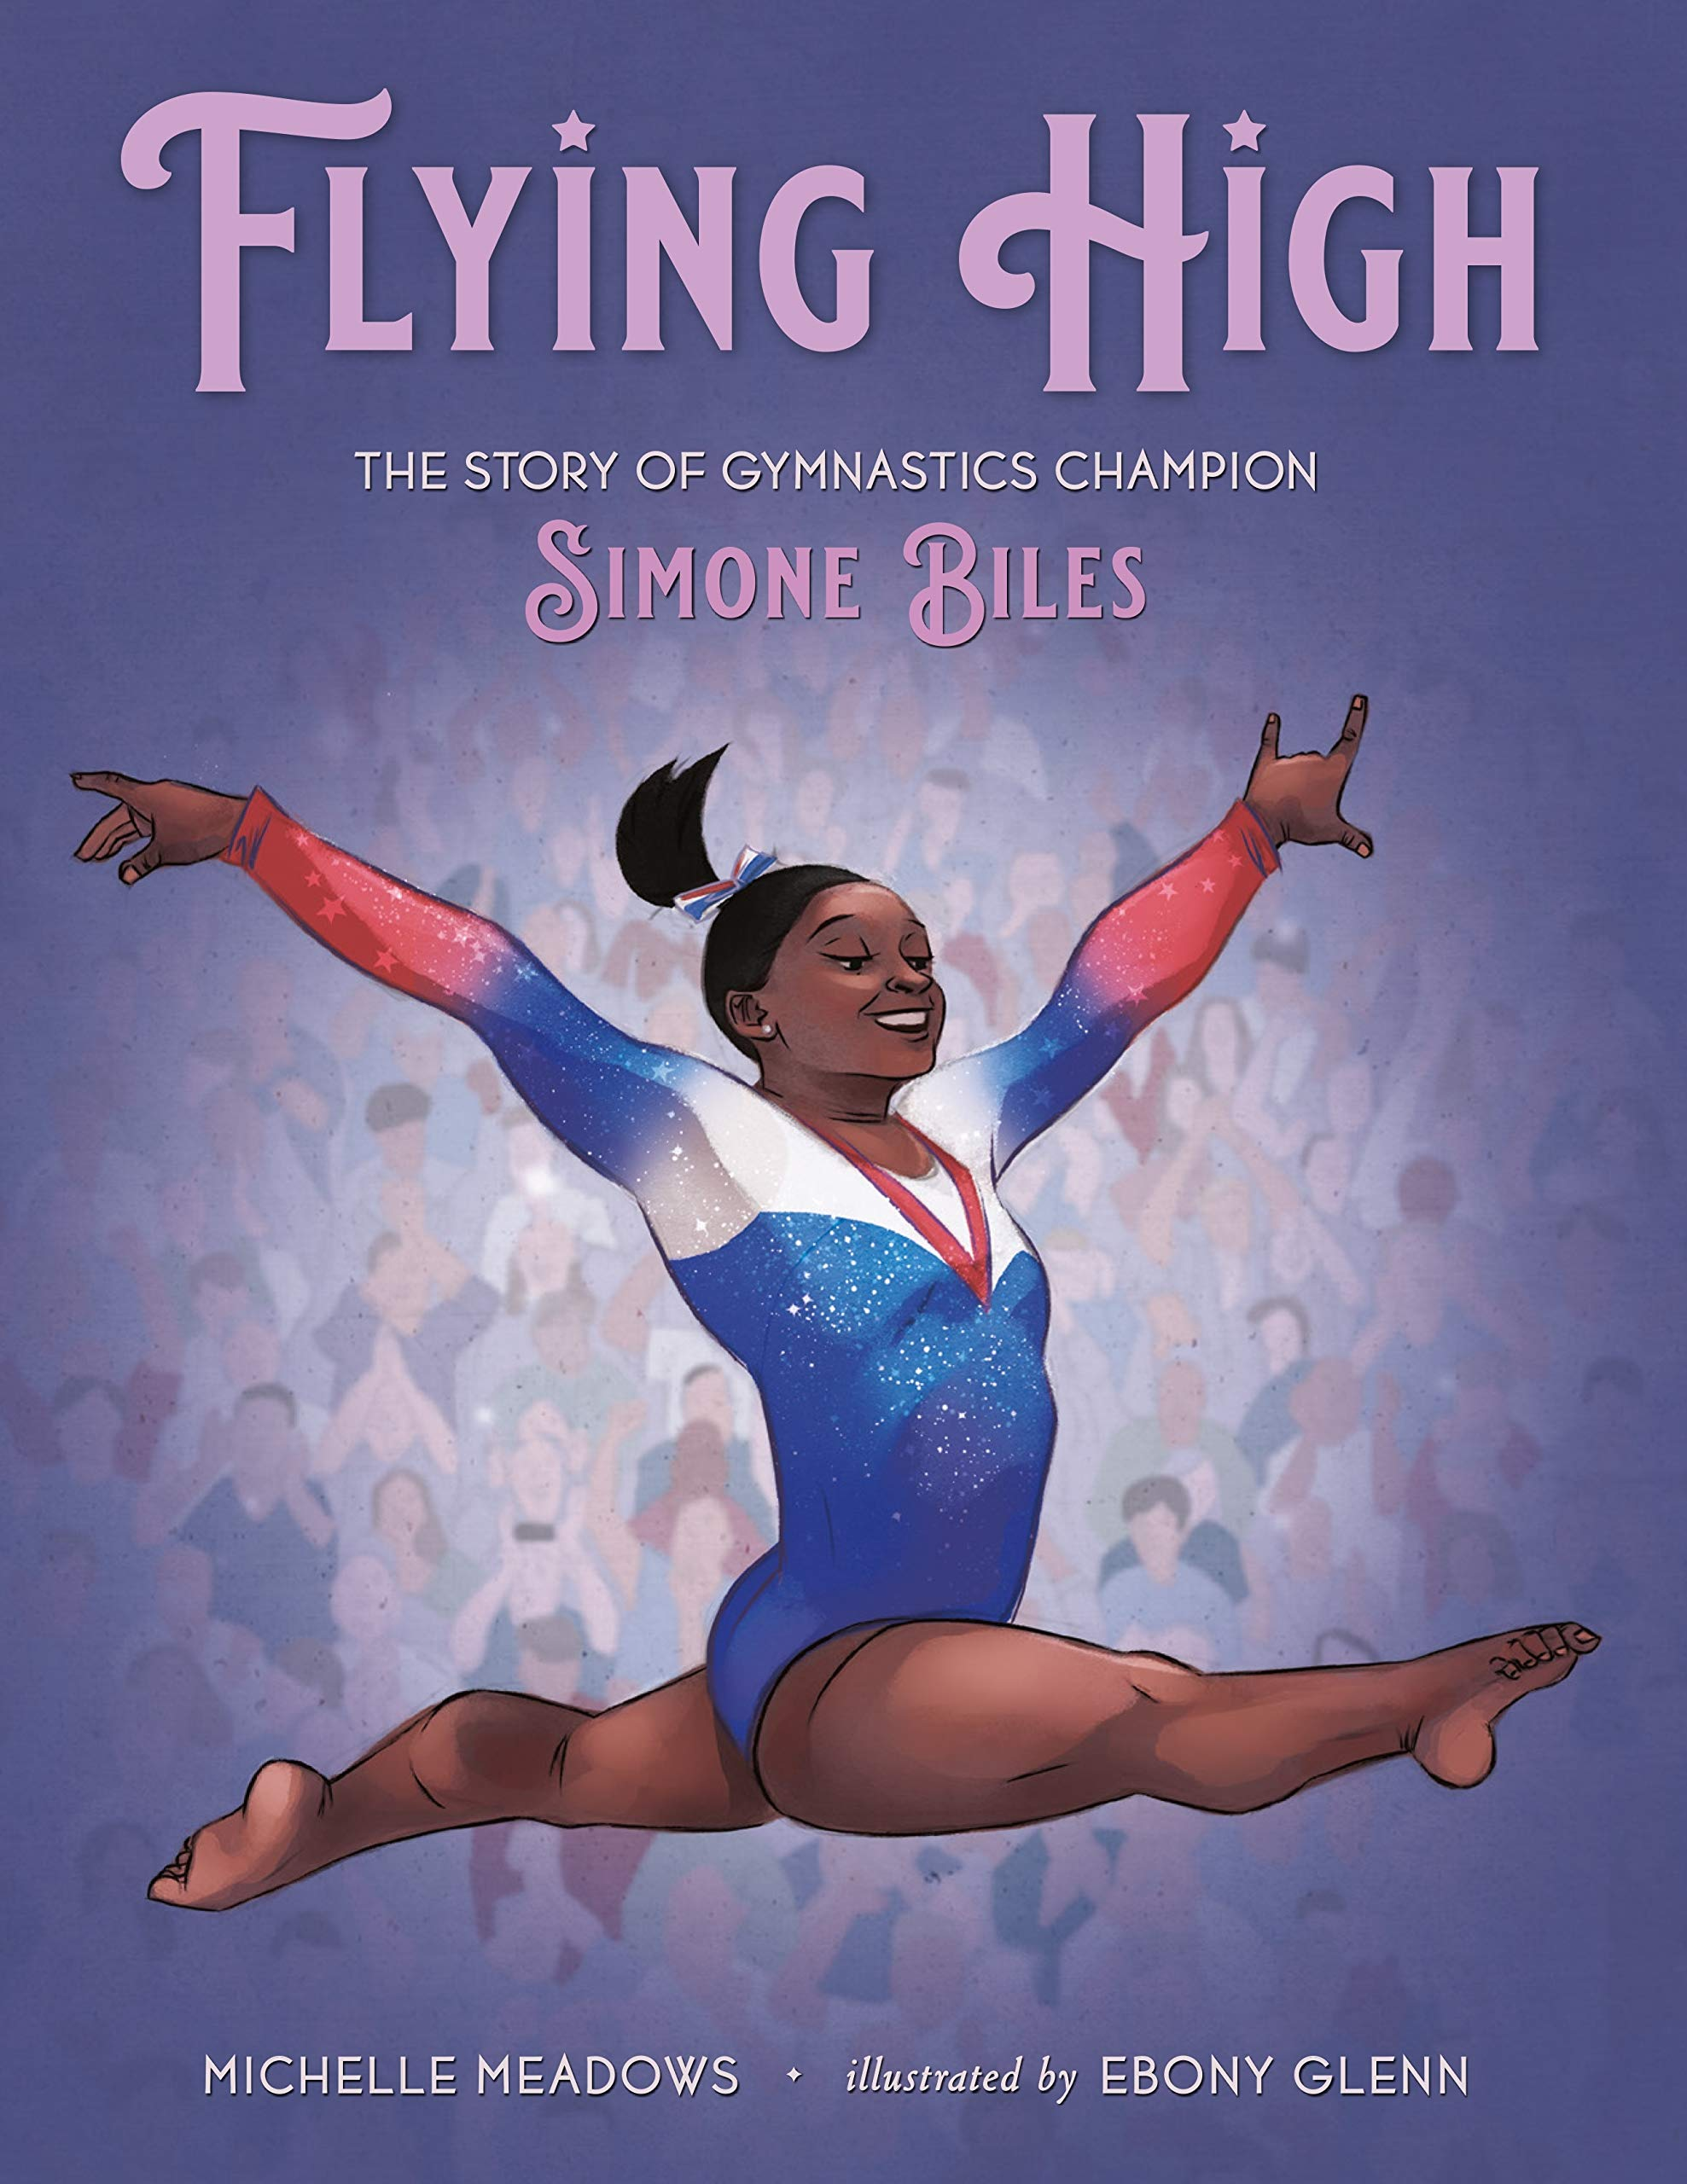 Book cover for Flying High, the story of gymnastics champion Simone Biles